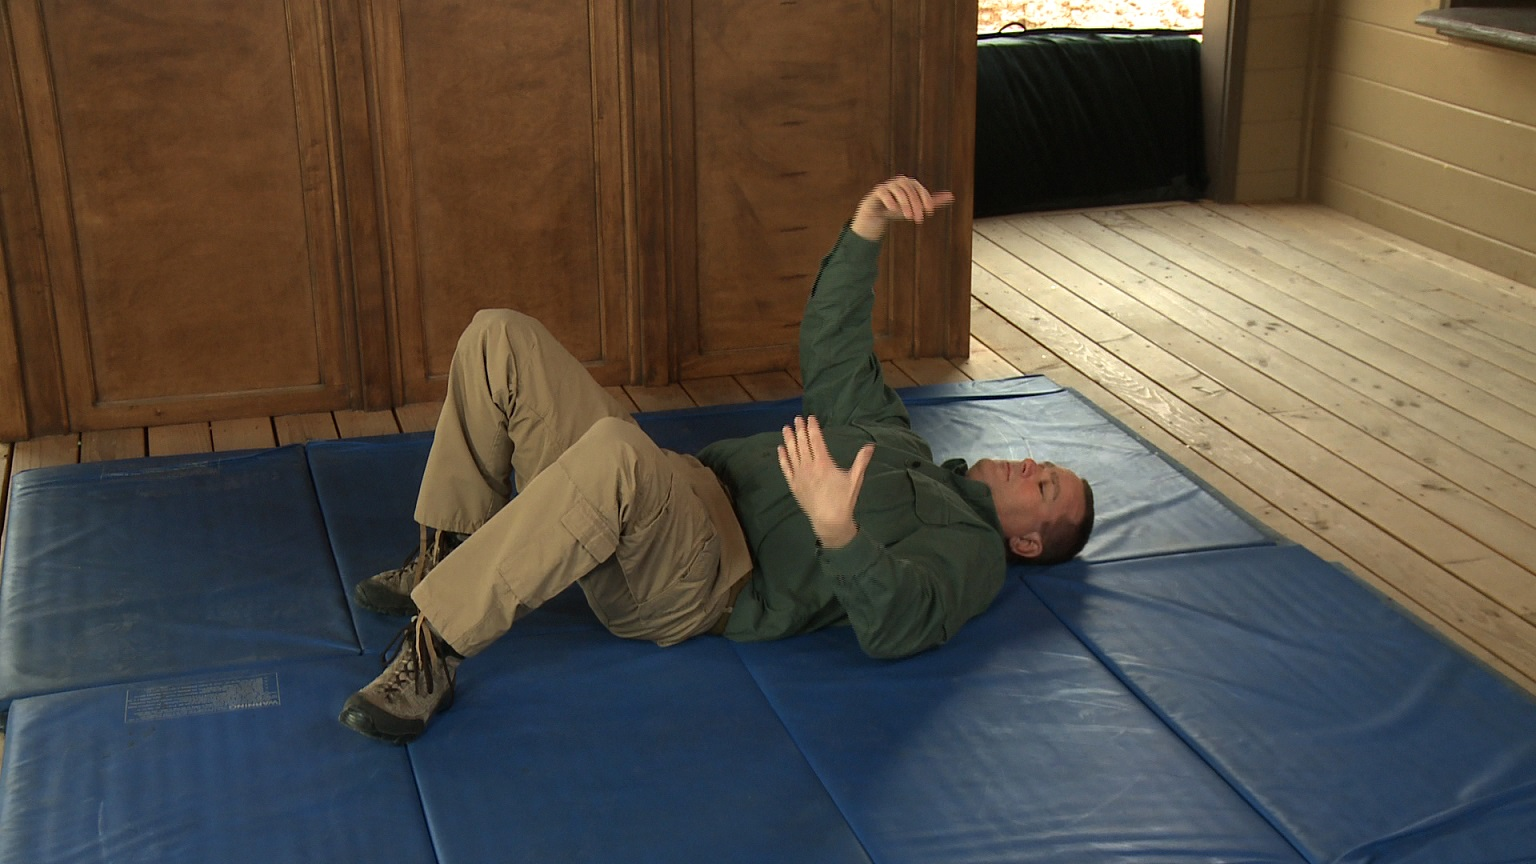 Self Defense Training: Survival Posture - Self Defense Videos